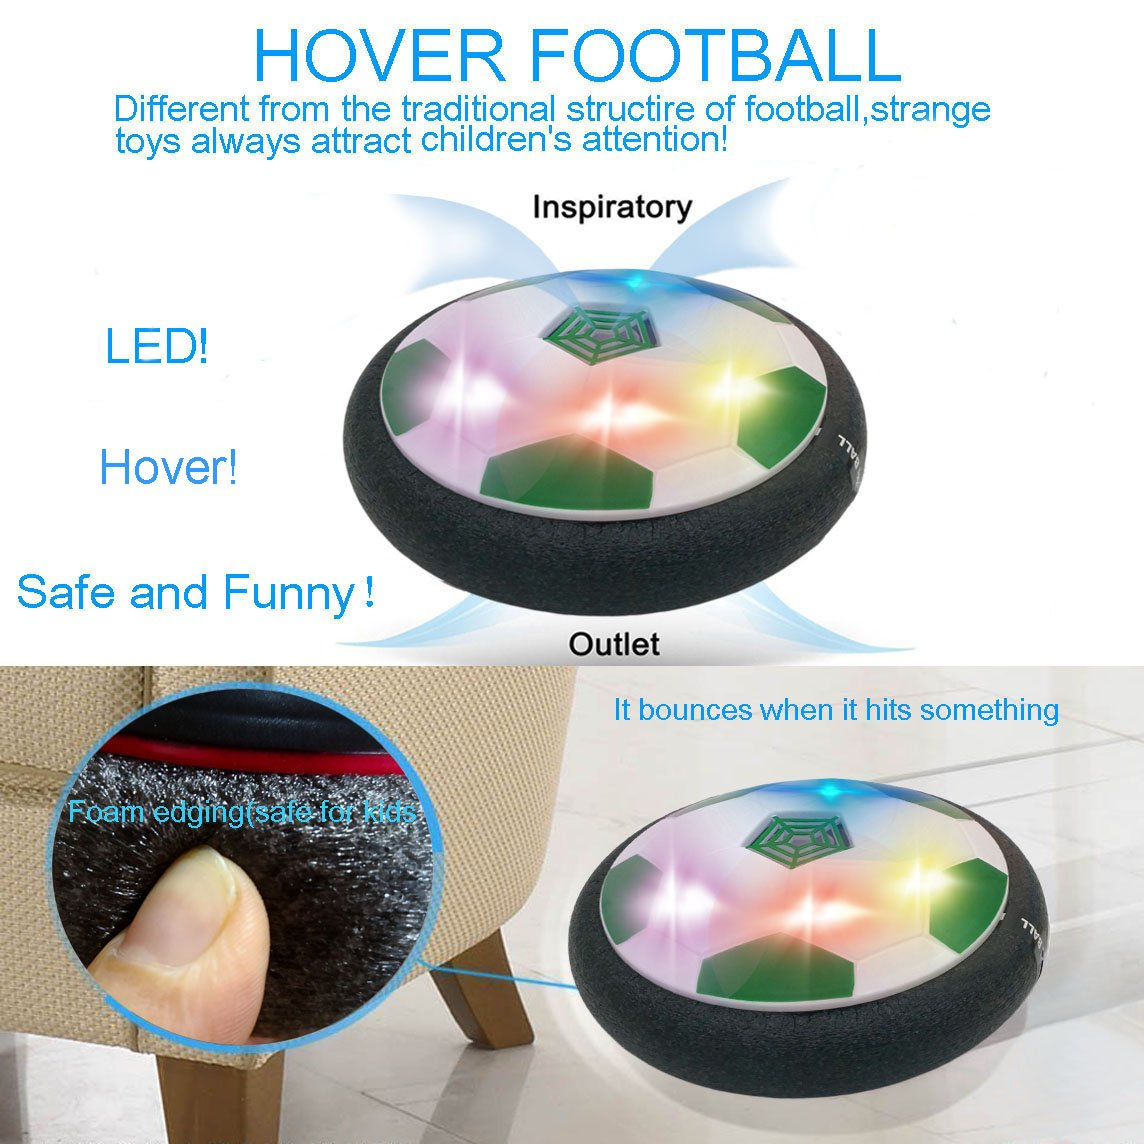 Floating Football Toys for 7 yr Old Boy Birthday Gift to Training Football Puzzle Game JRD/&BS WINL Gifts for 3-12 Years Old Boys Style2 Blue